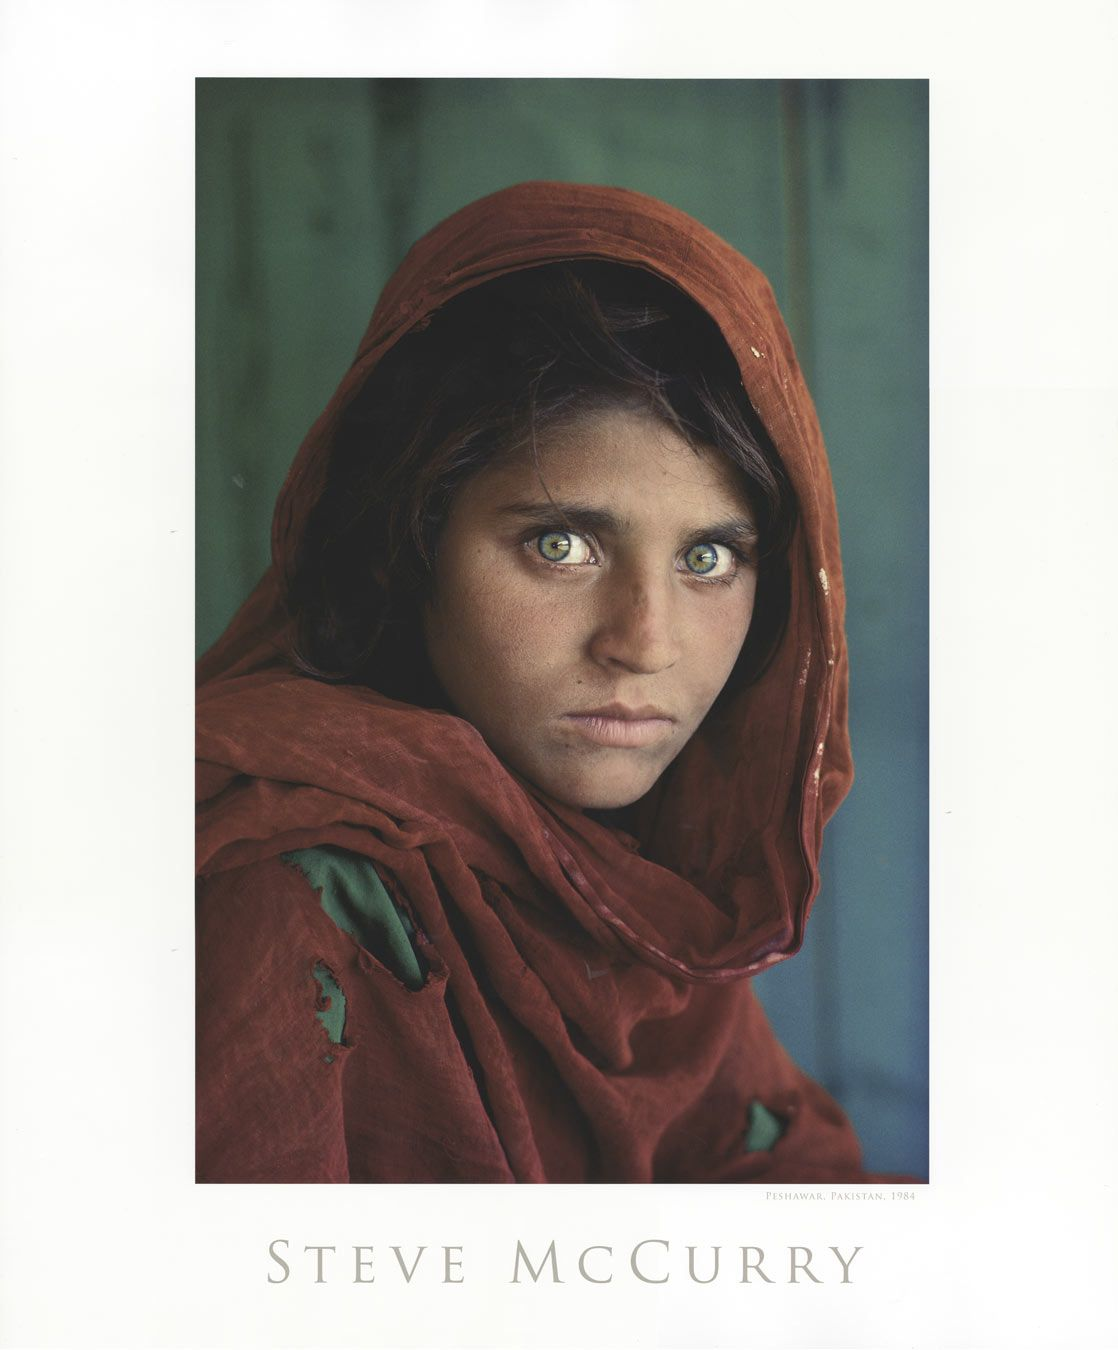 Iconic National Geographic Afghan Girl arrested